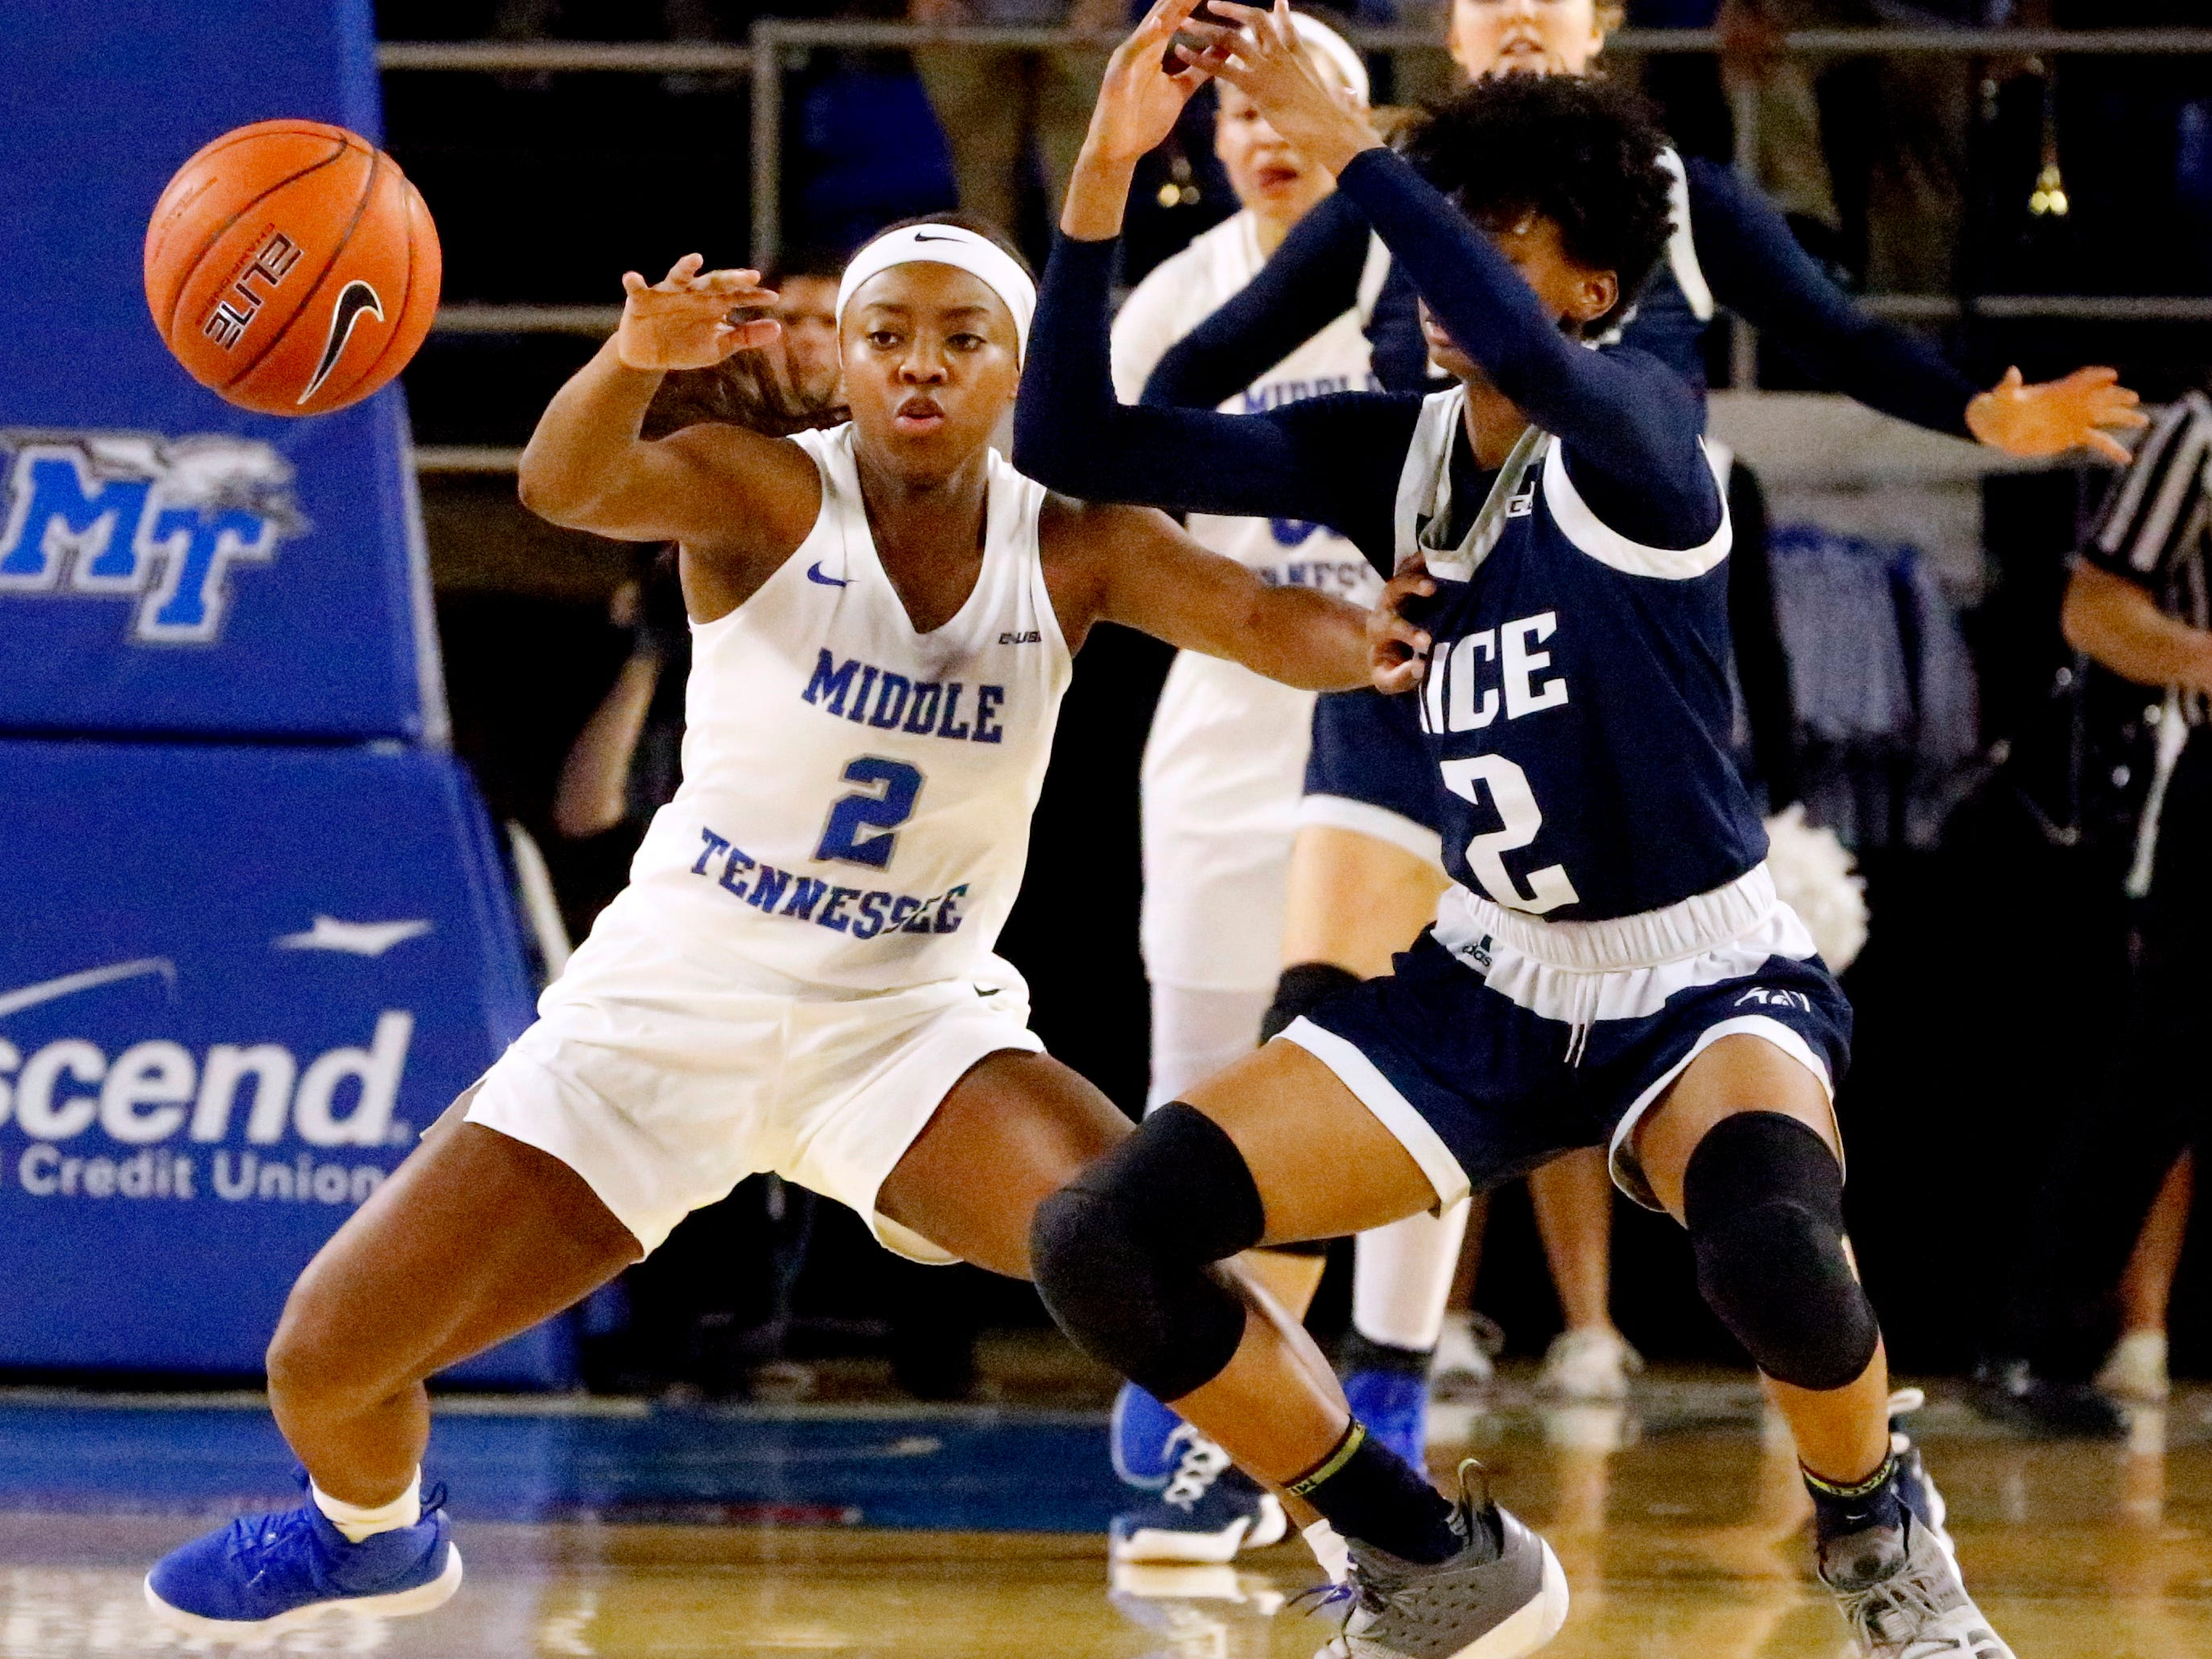 Rice's guard Sydne Wiggins (2) looses control of the bal as MTSU's guard Taylor Sutton (2) goes after the ball on Thursday Jan. 24, 2019.